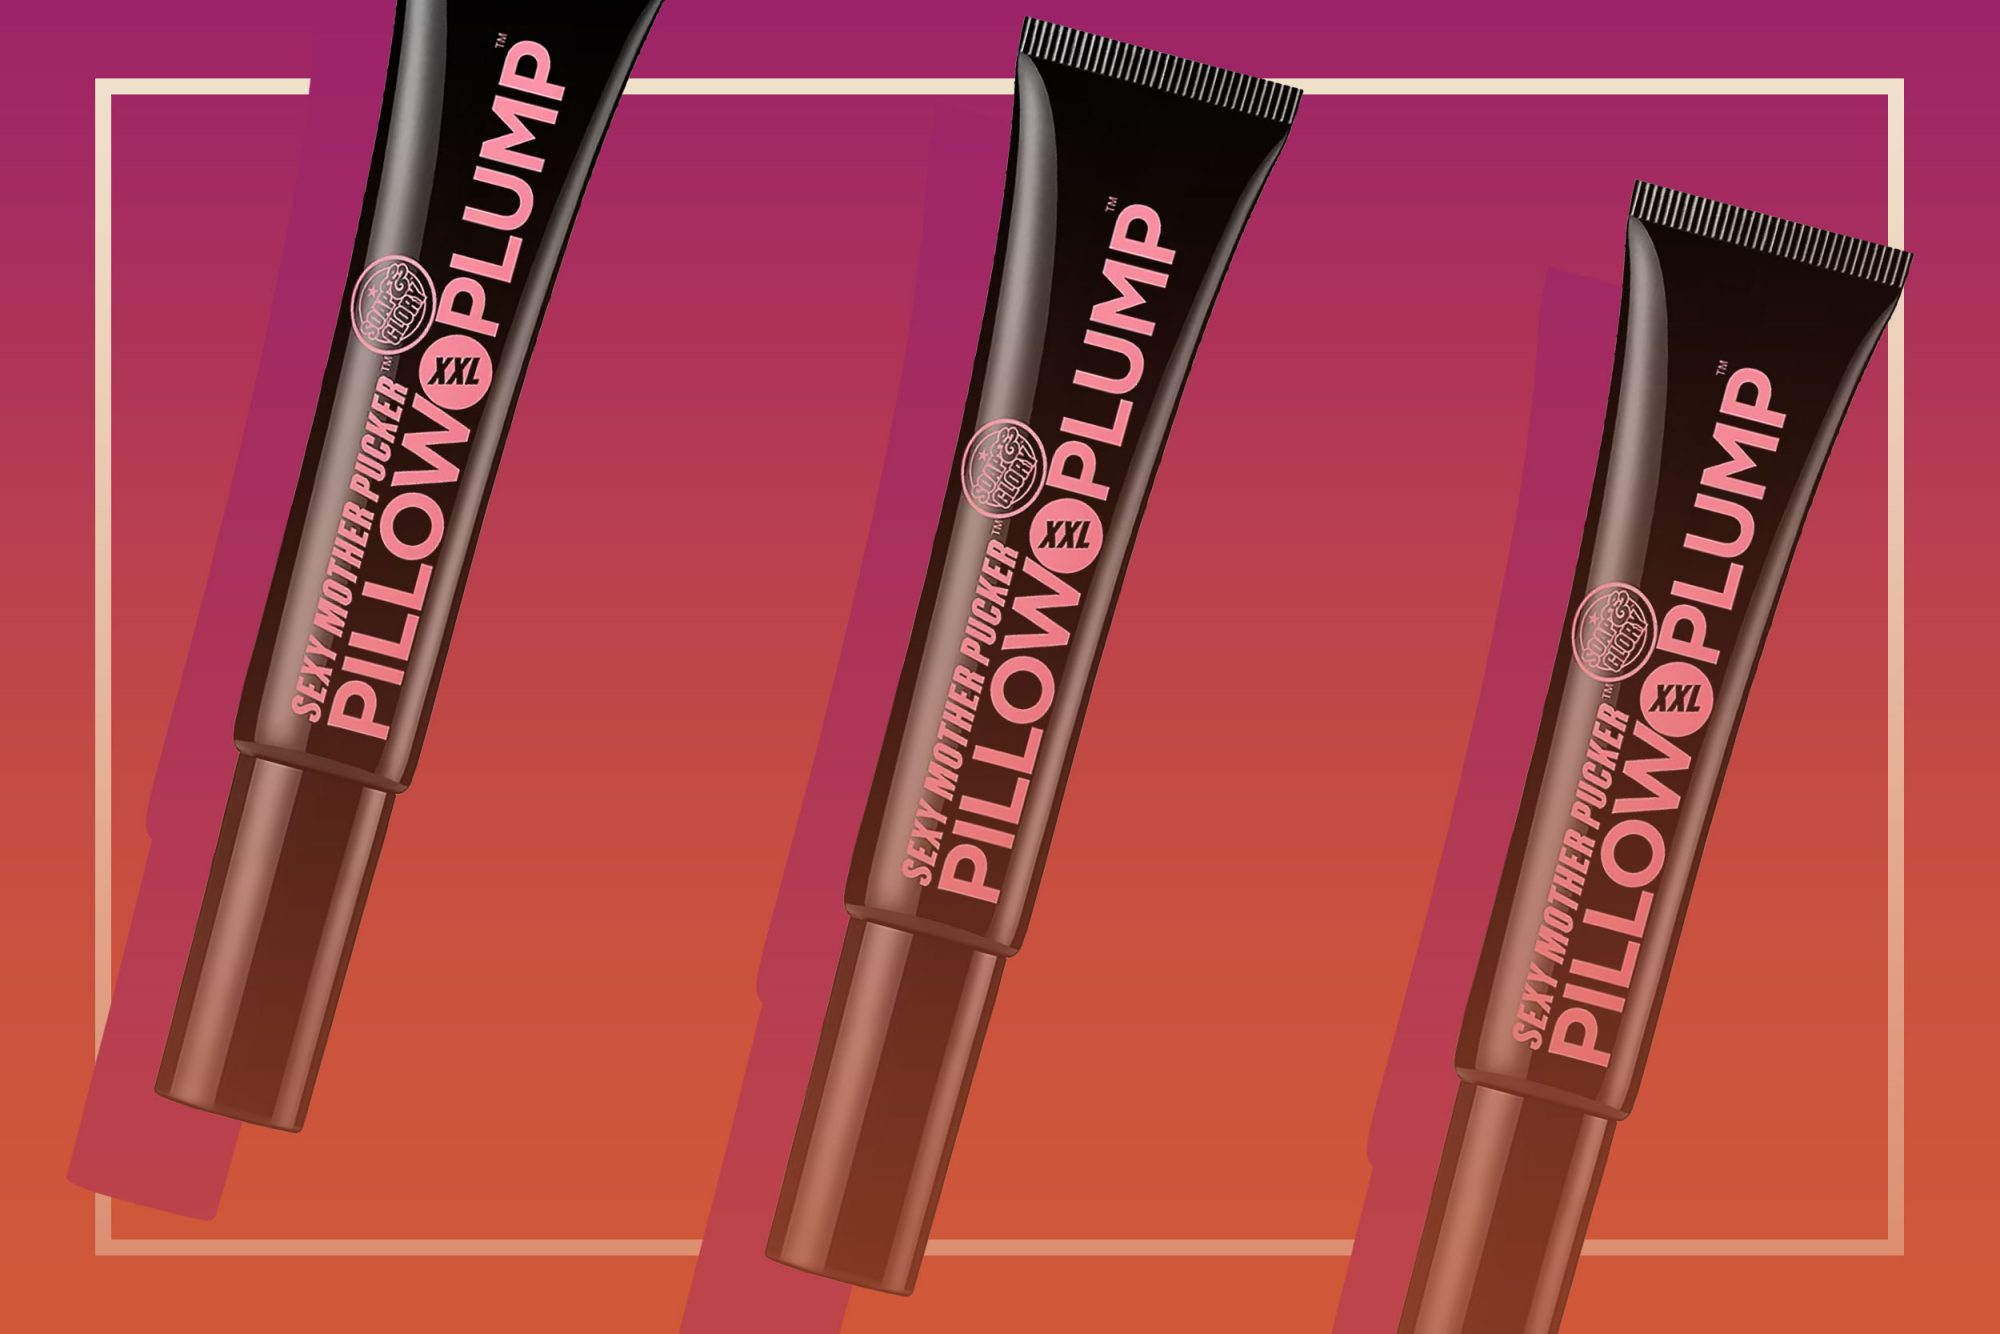 This $13 Plumping Gloss Gives Your Lips Shine and Fullness